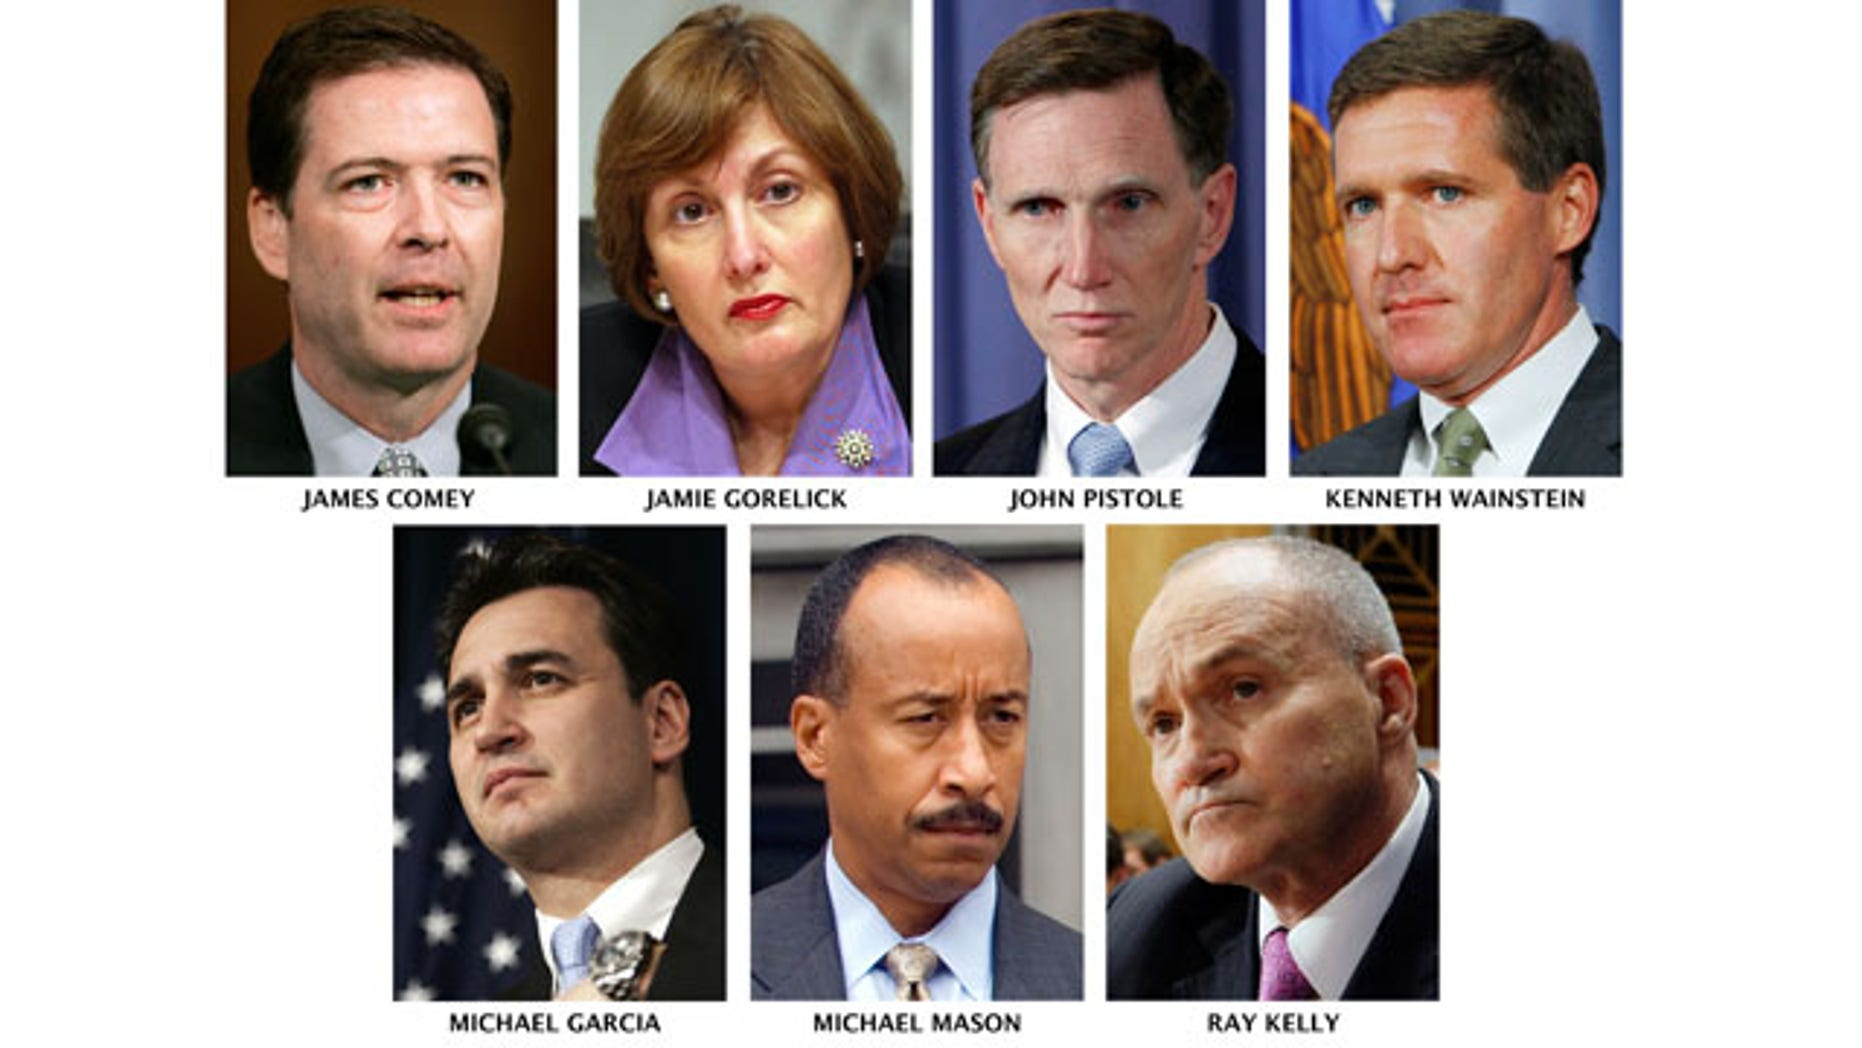 This image shows possible successors to FBI Director Robert Mueller, whose 10-year nonrenewable term expires Sept. 4. James Comey and Kenneth Wainstein are both former Bush administration law enforcement officers who served in sensitive national security-related posts.